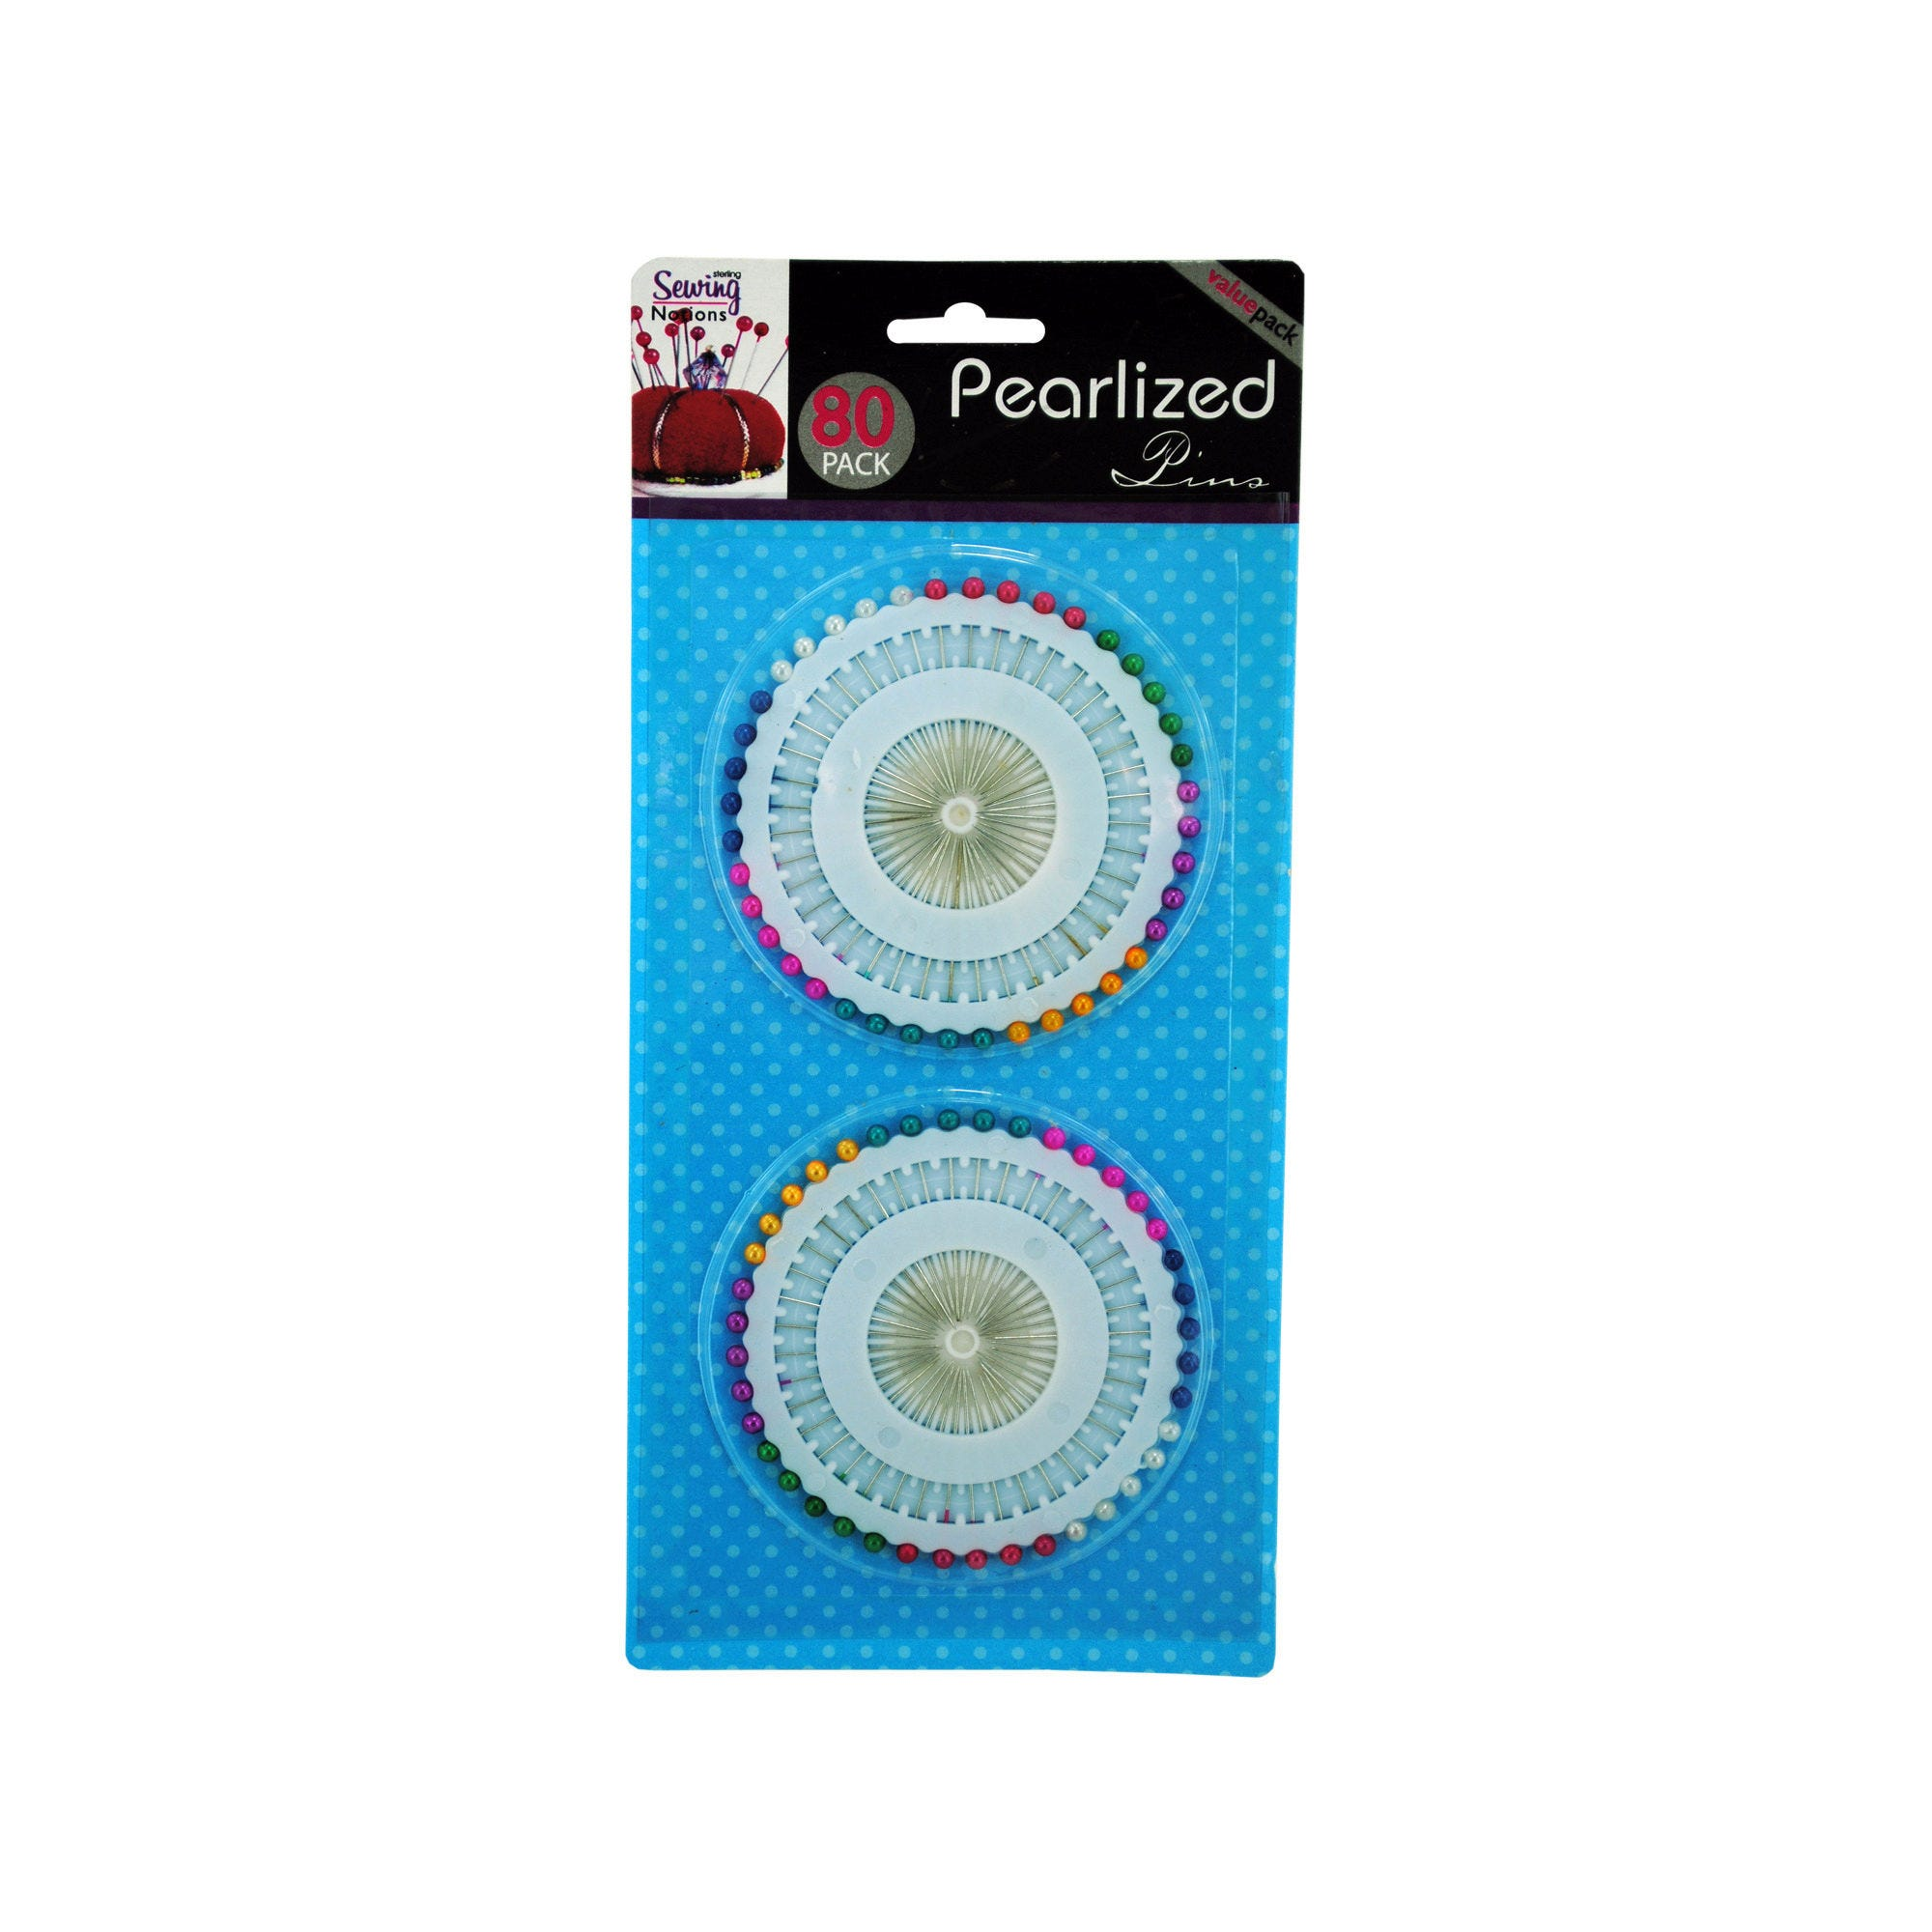 Pearlized Straight Pins- Qty 24